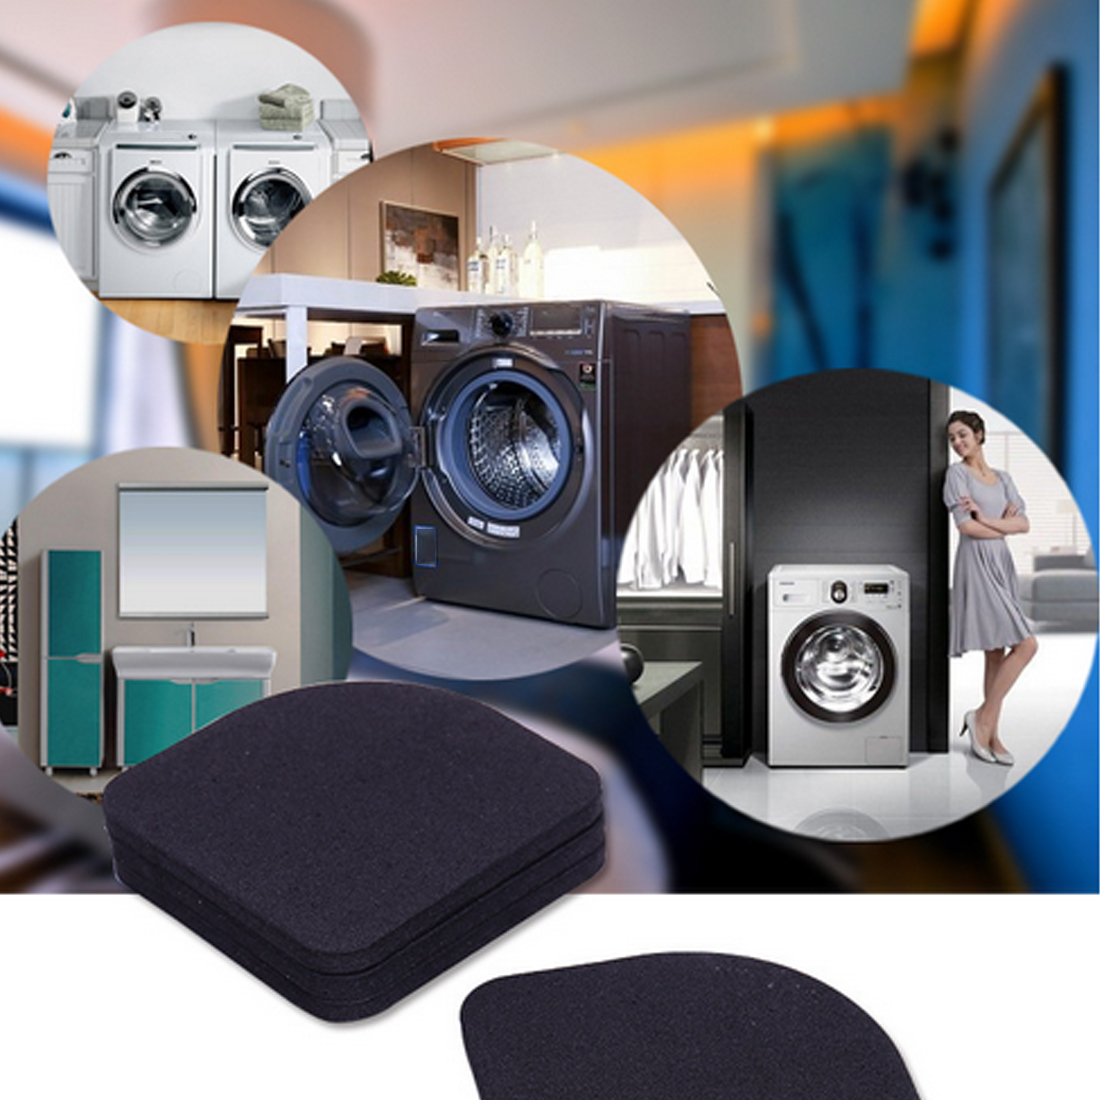 4pcs/set Black Multifunctional Washing Machine Shock Pads Non-slip Mats Refrigerator Sho ...